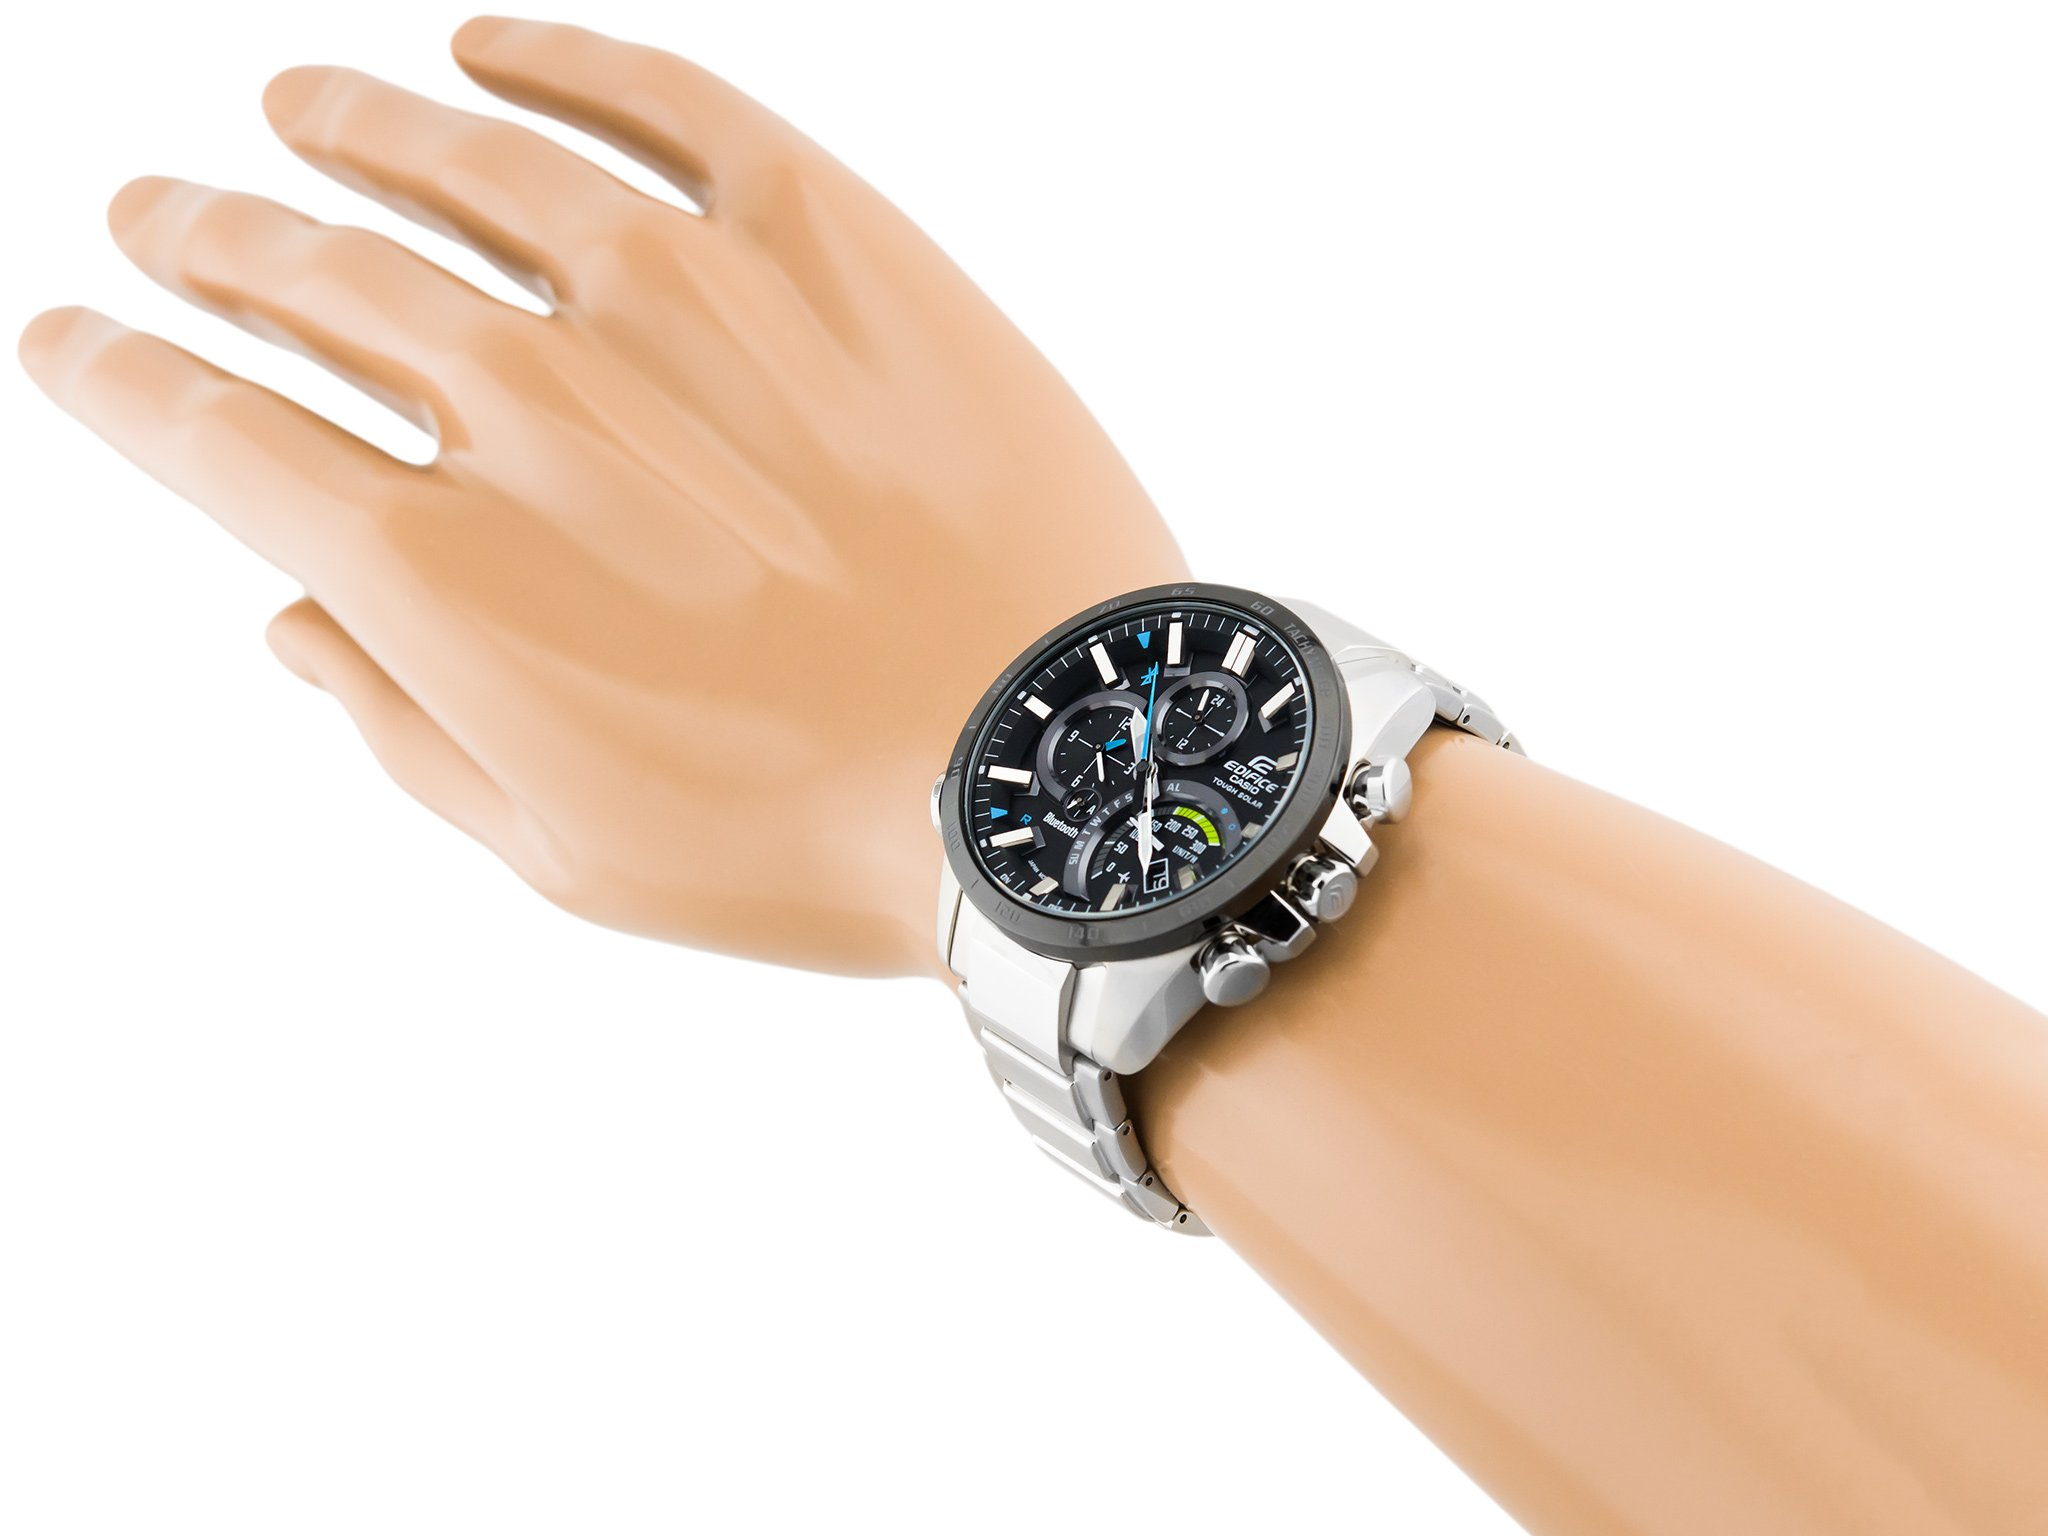 Casio Edifice Eqb 501xdb 1a Mineral Glass Silver Watch Intl Daftar Efr 501d 7av Jam Tangan Pria Products Subject To Stock Availability Please Pm Whatsapp Us For The